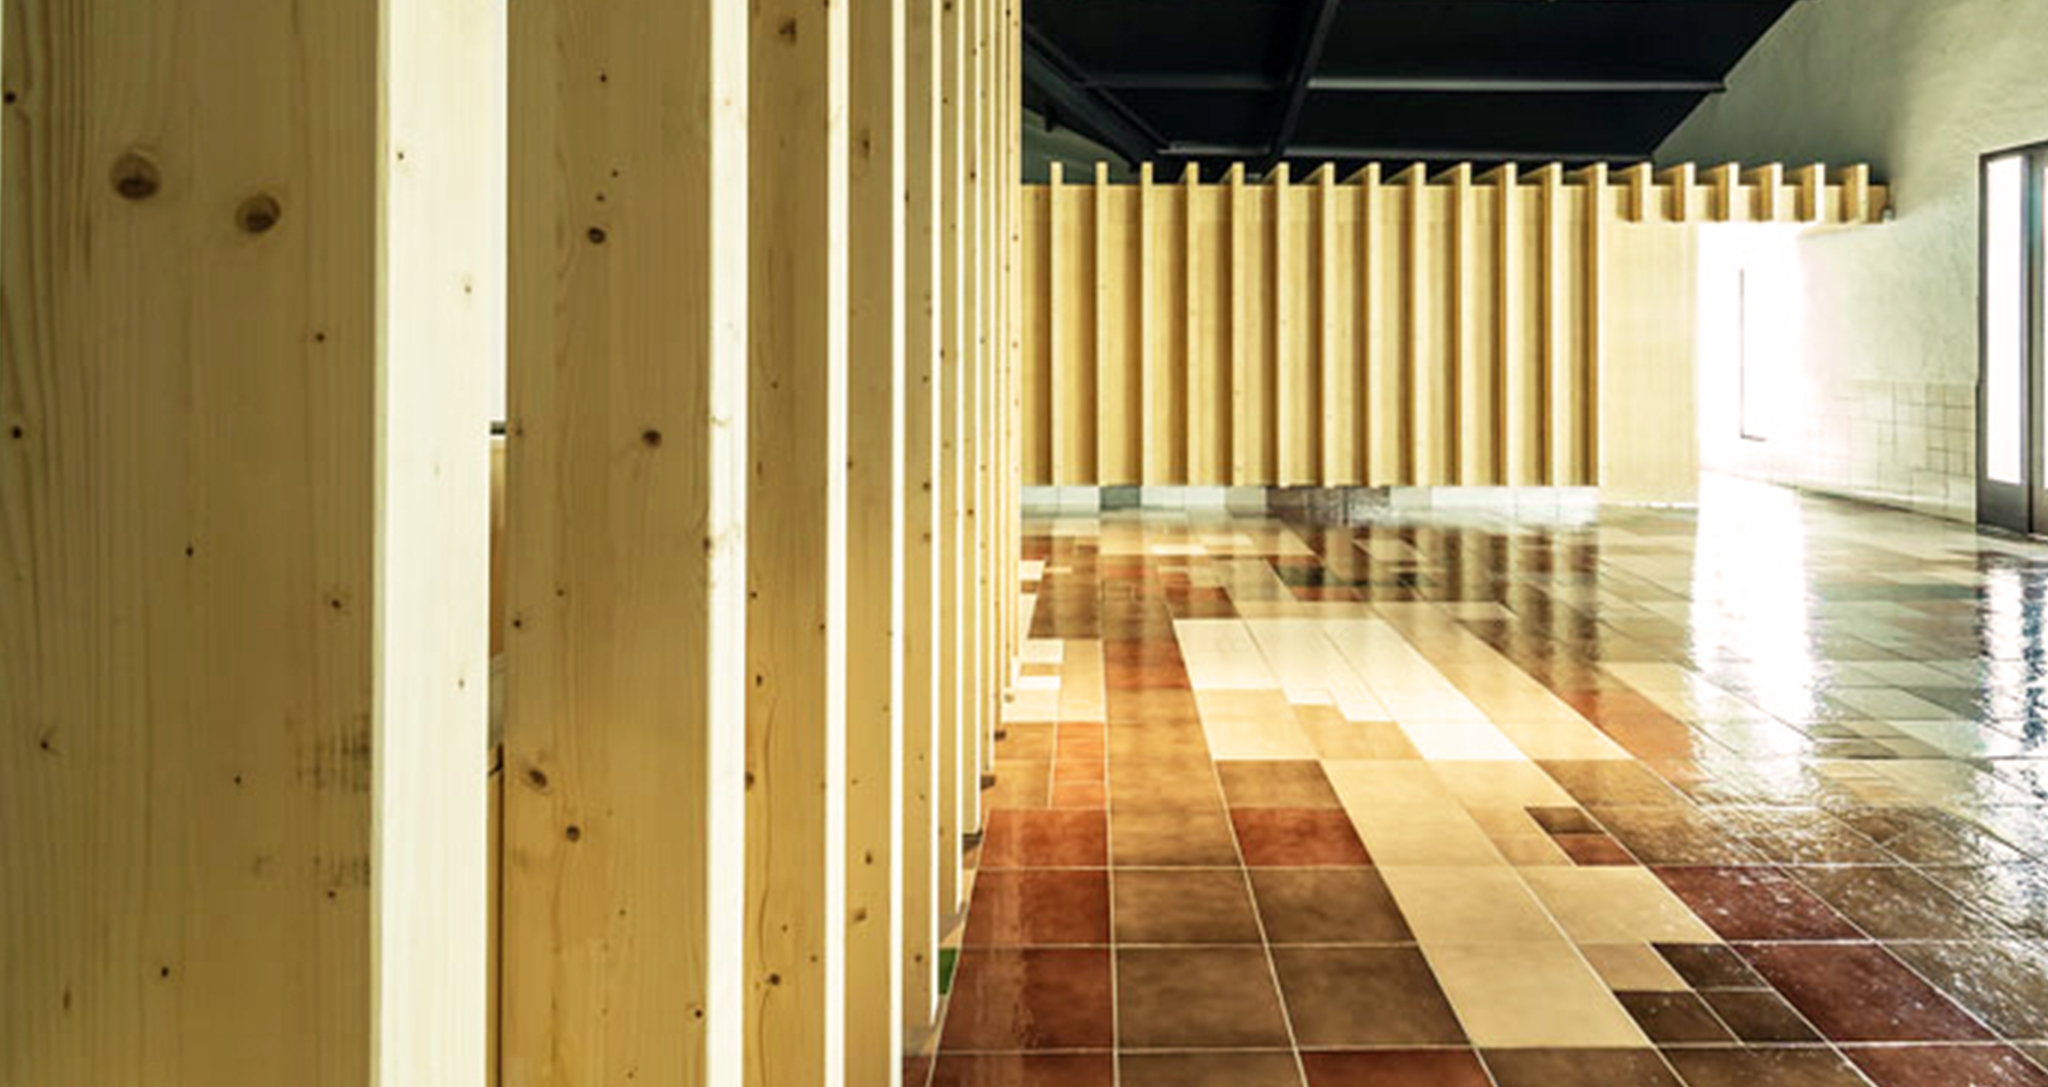 Architecture and renovation of Moullé restaurant by Rocamora design Elche Alicante Spain